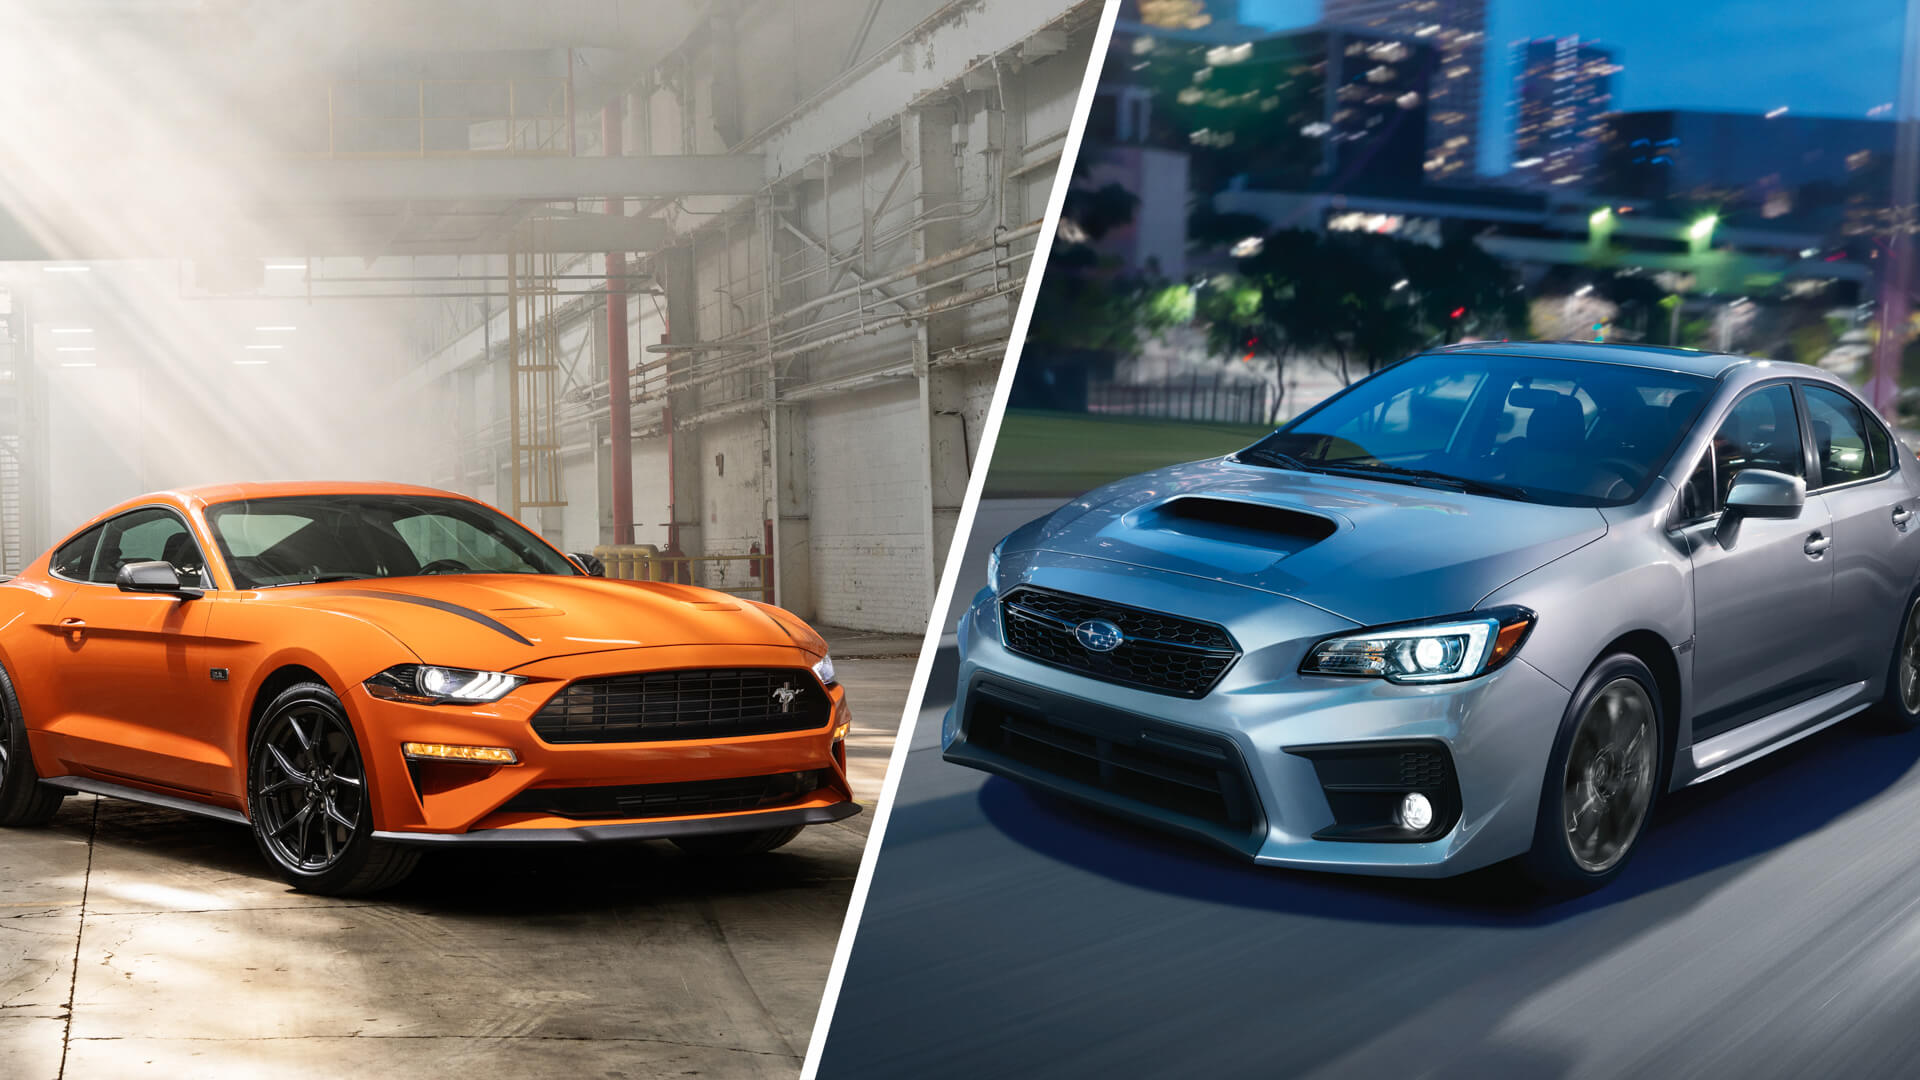 Quiz: Can You Tell Which Car Is More Expensive?